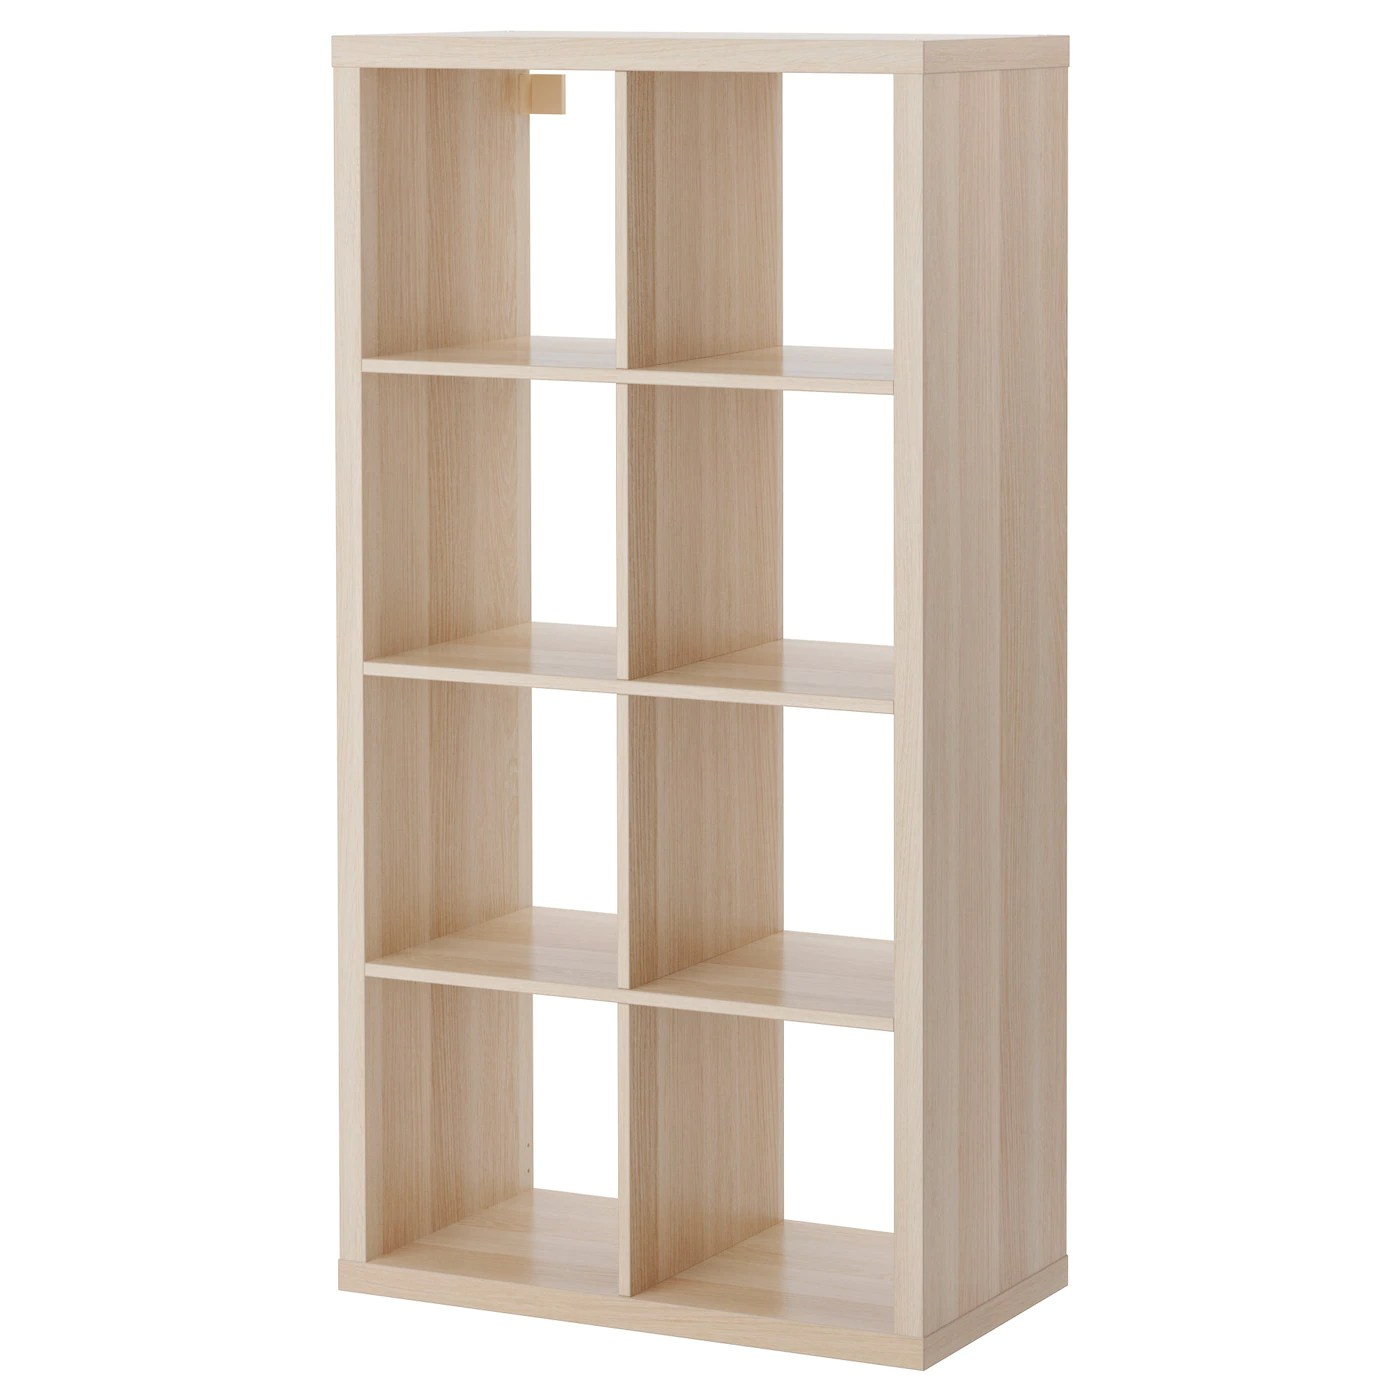 Ikea Cubes Kallax Shelving Unit White Stained Oak Effect